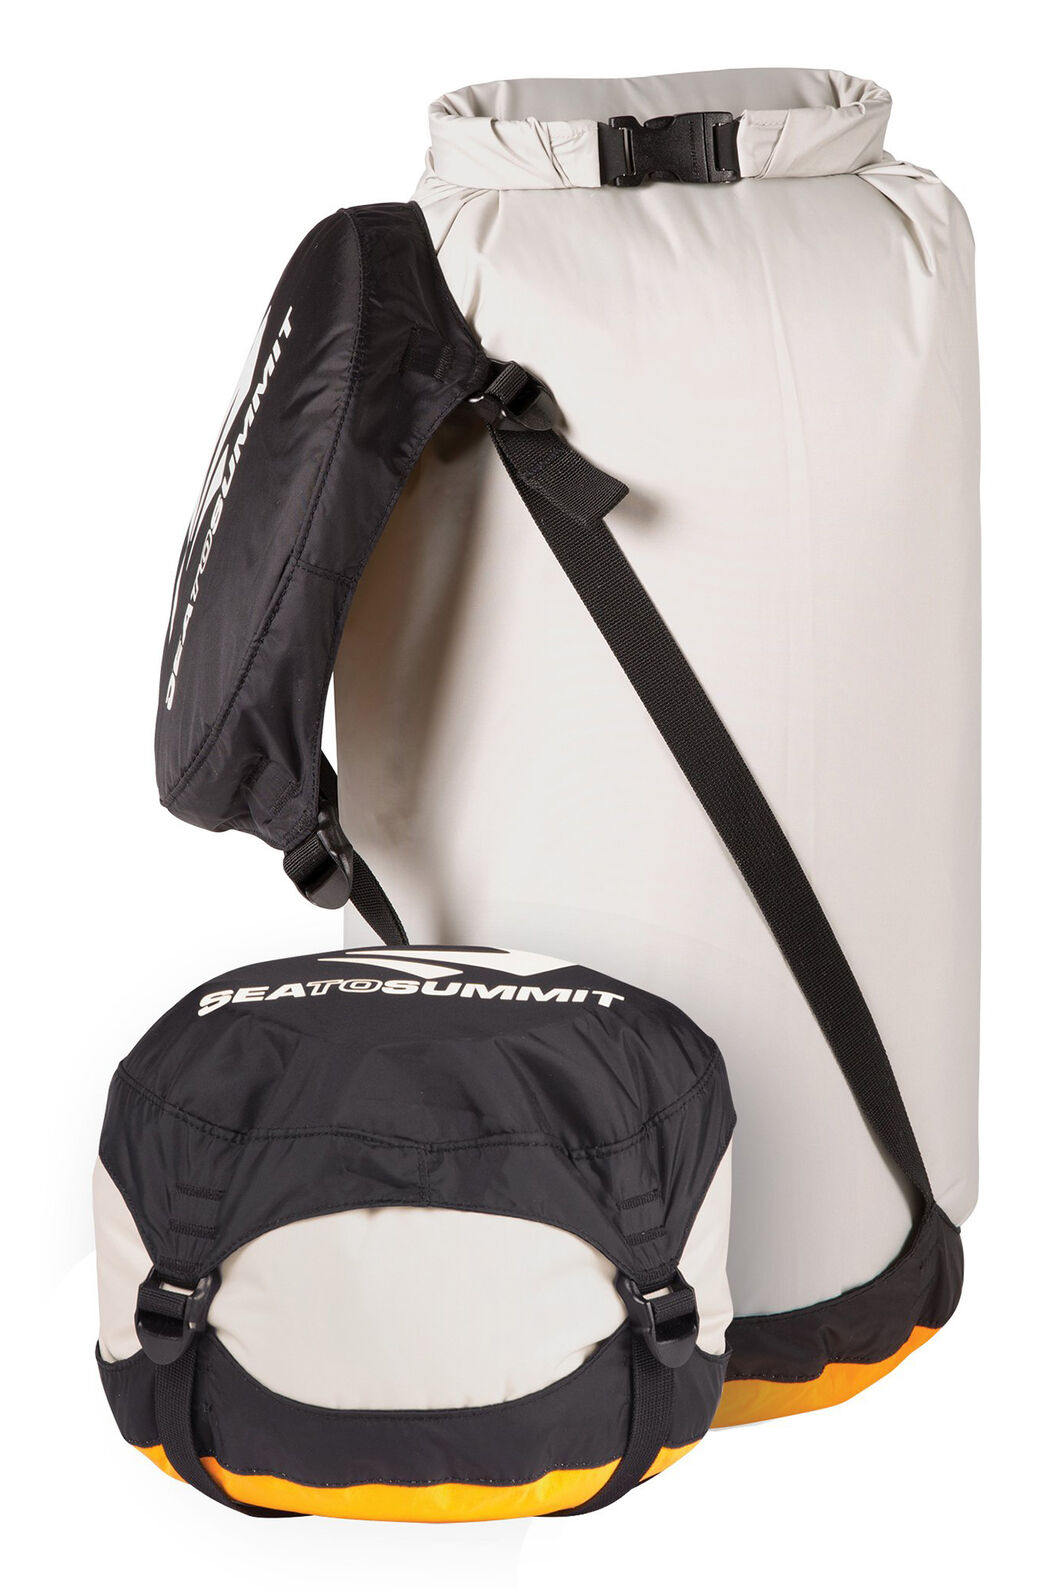 Sea to Summit eVent® Compression Drysack - 10L, None, hi-res